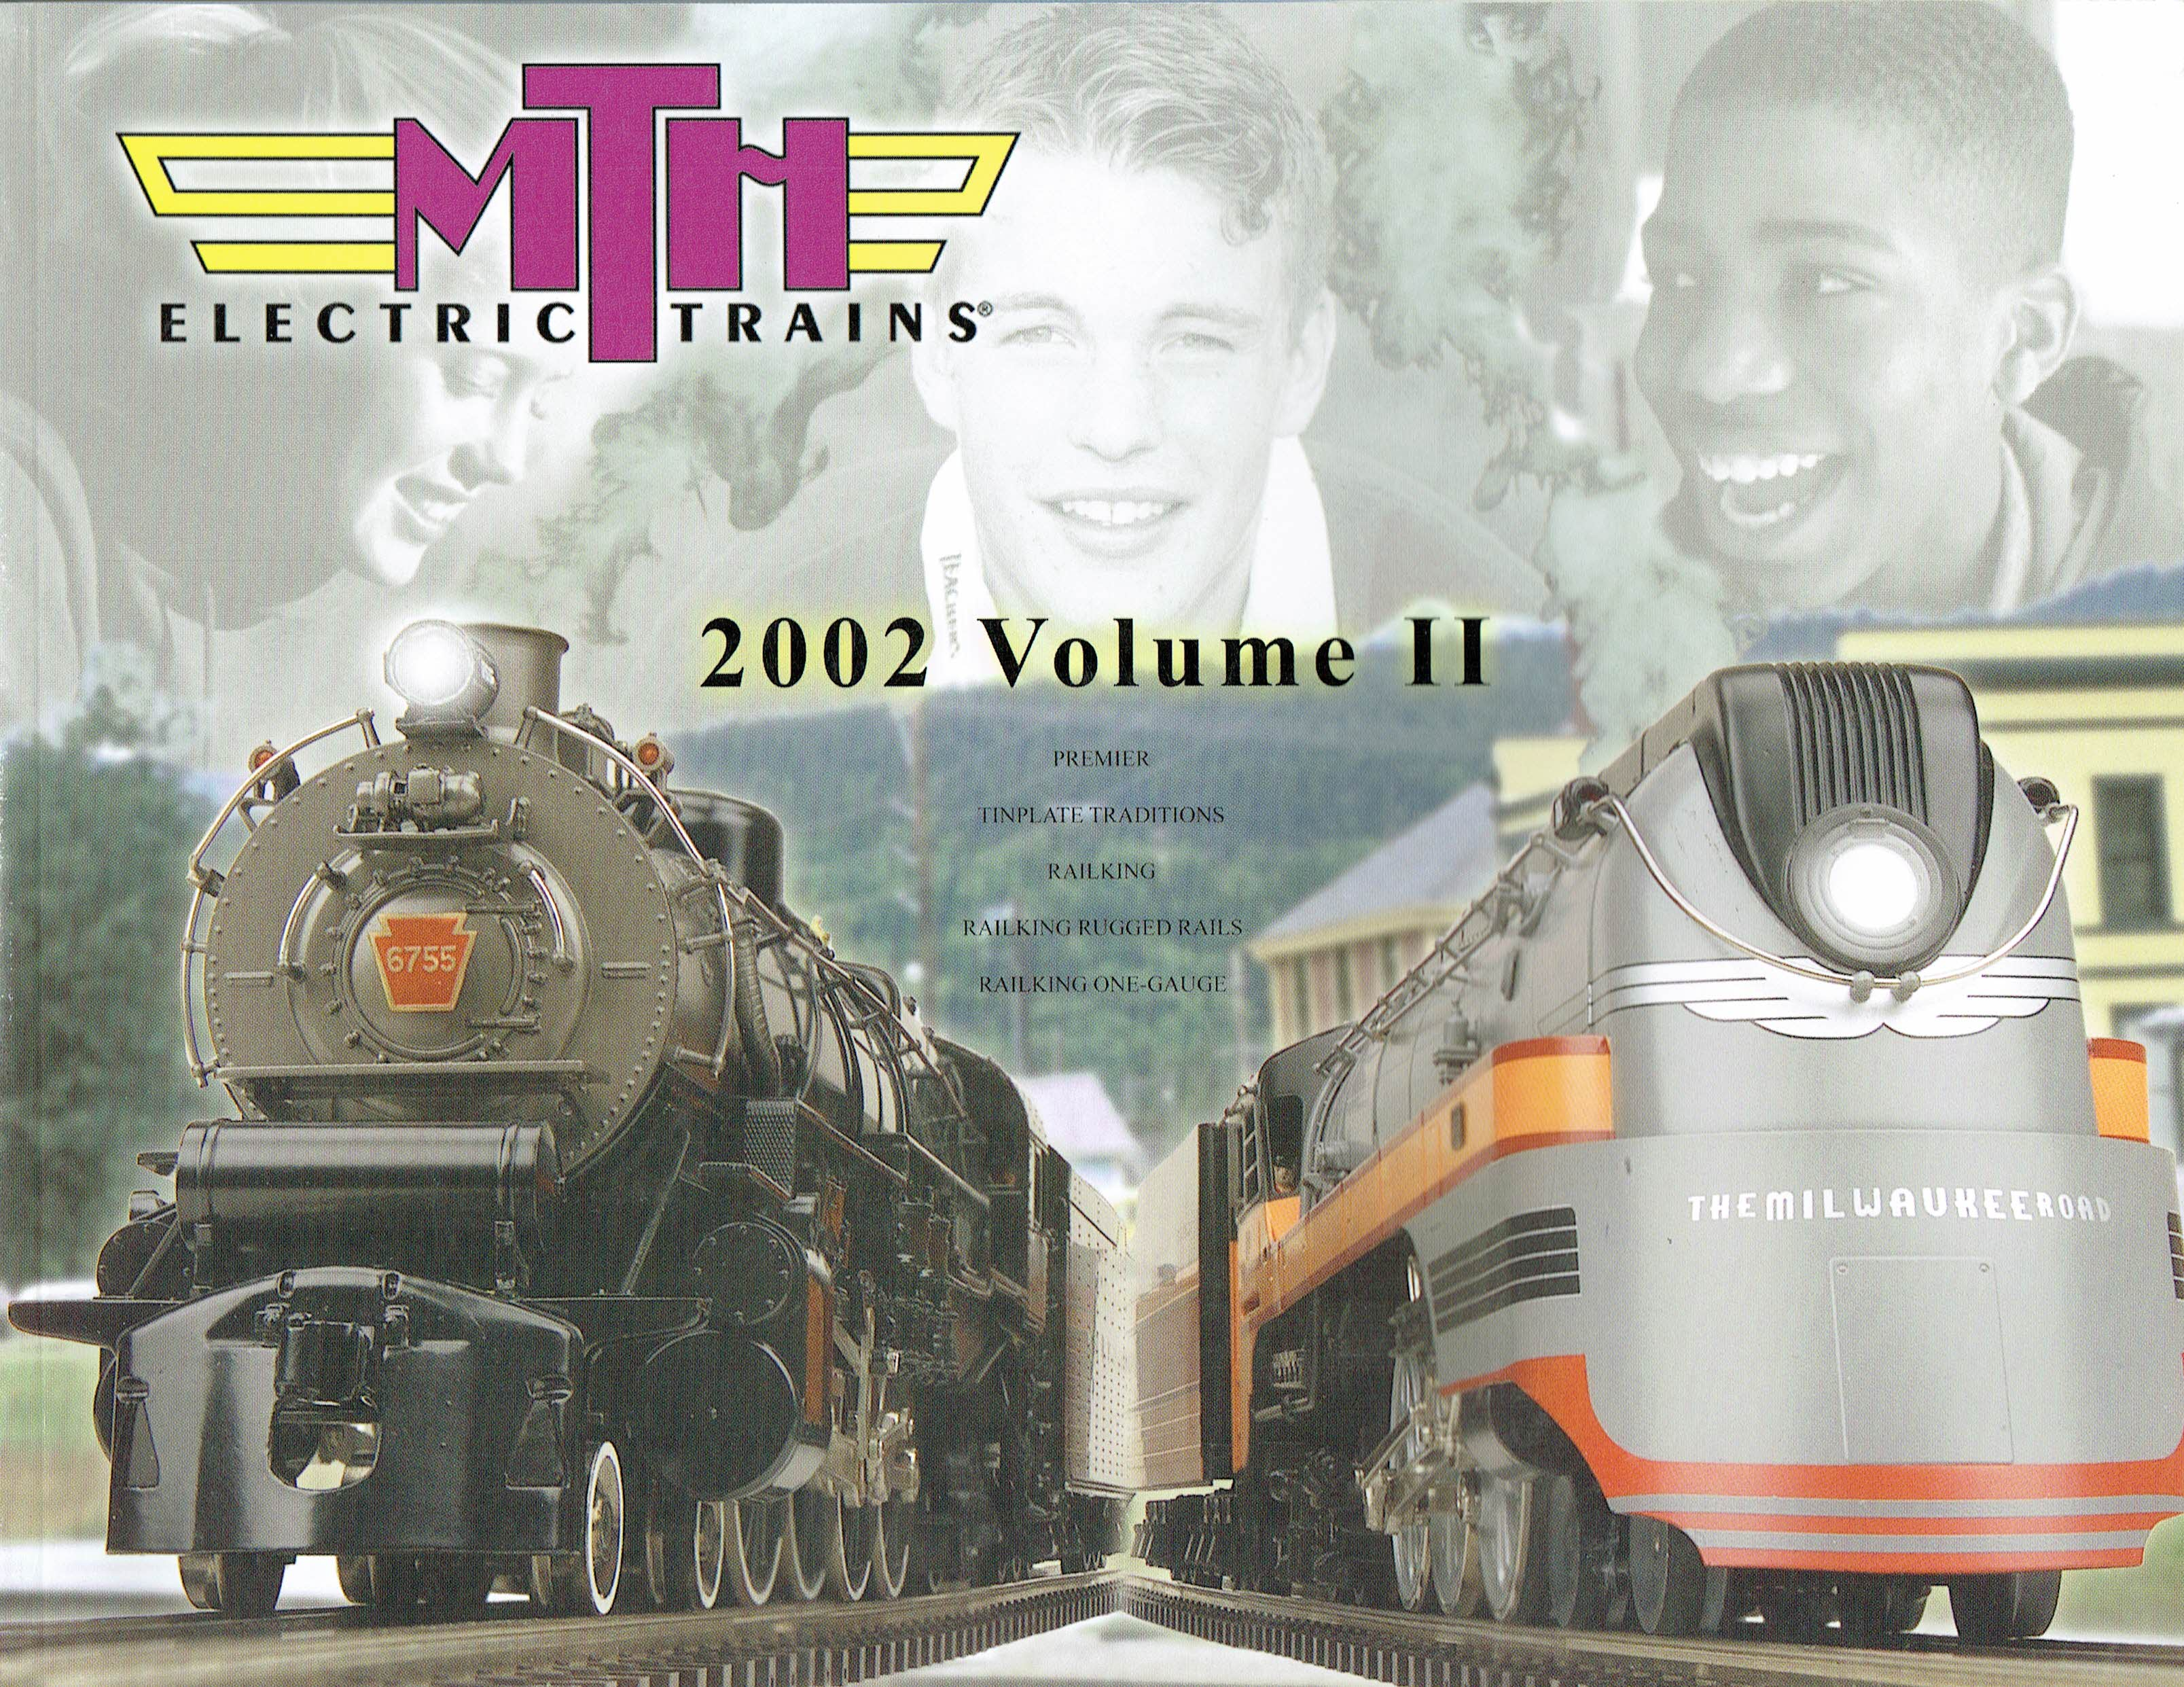 MTH 2002 Volume II Catalog image